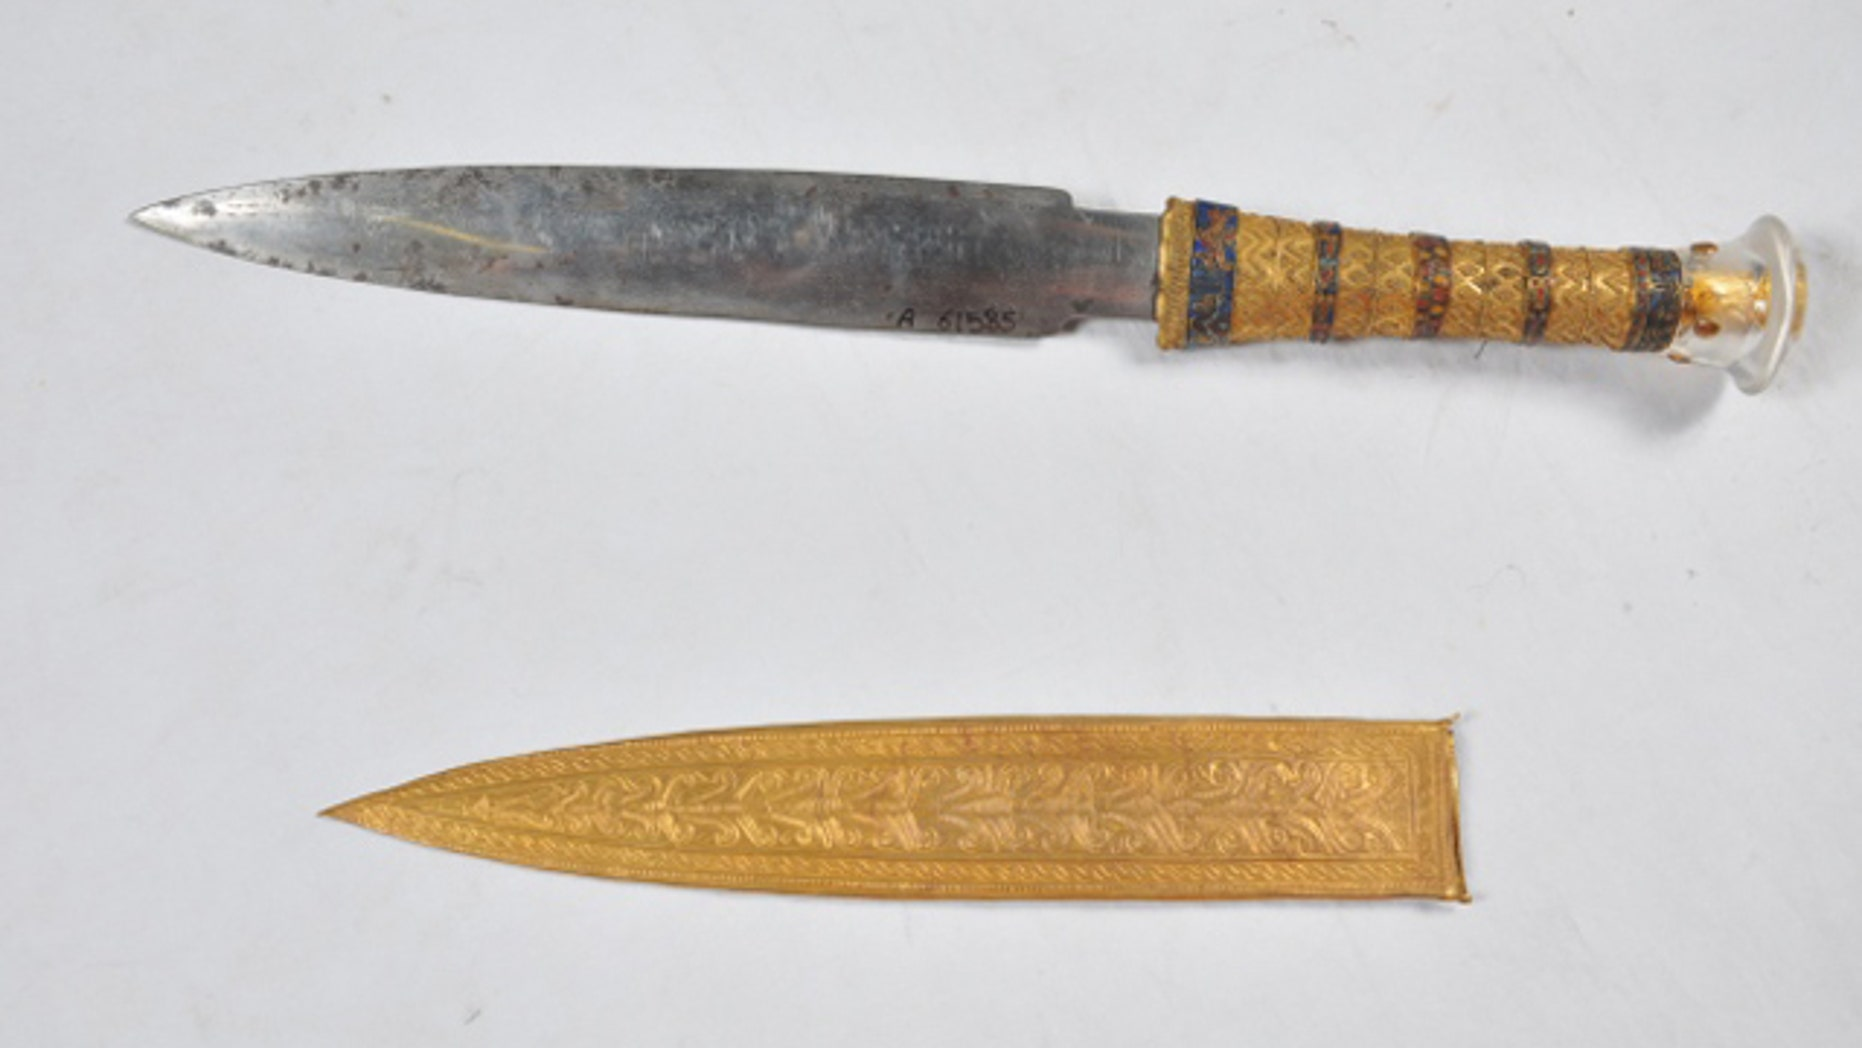 This undated image shows a dagger and sheath found in the tomb of the Egyptian pharaoh Tutankhamun